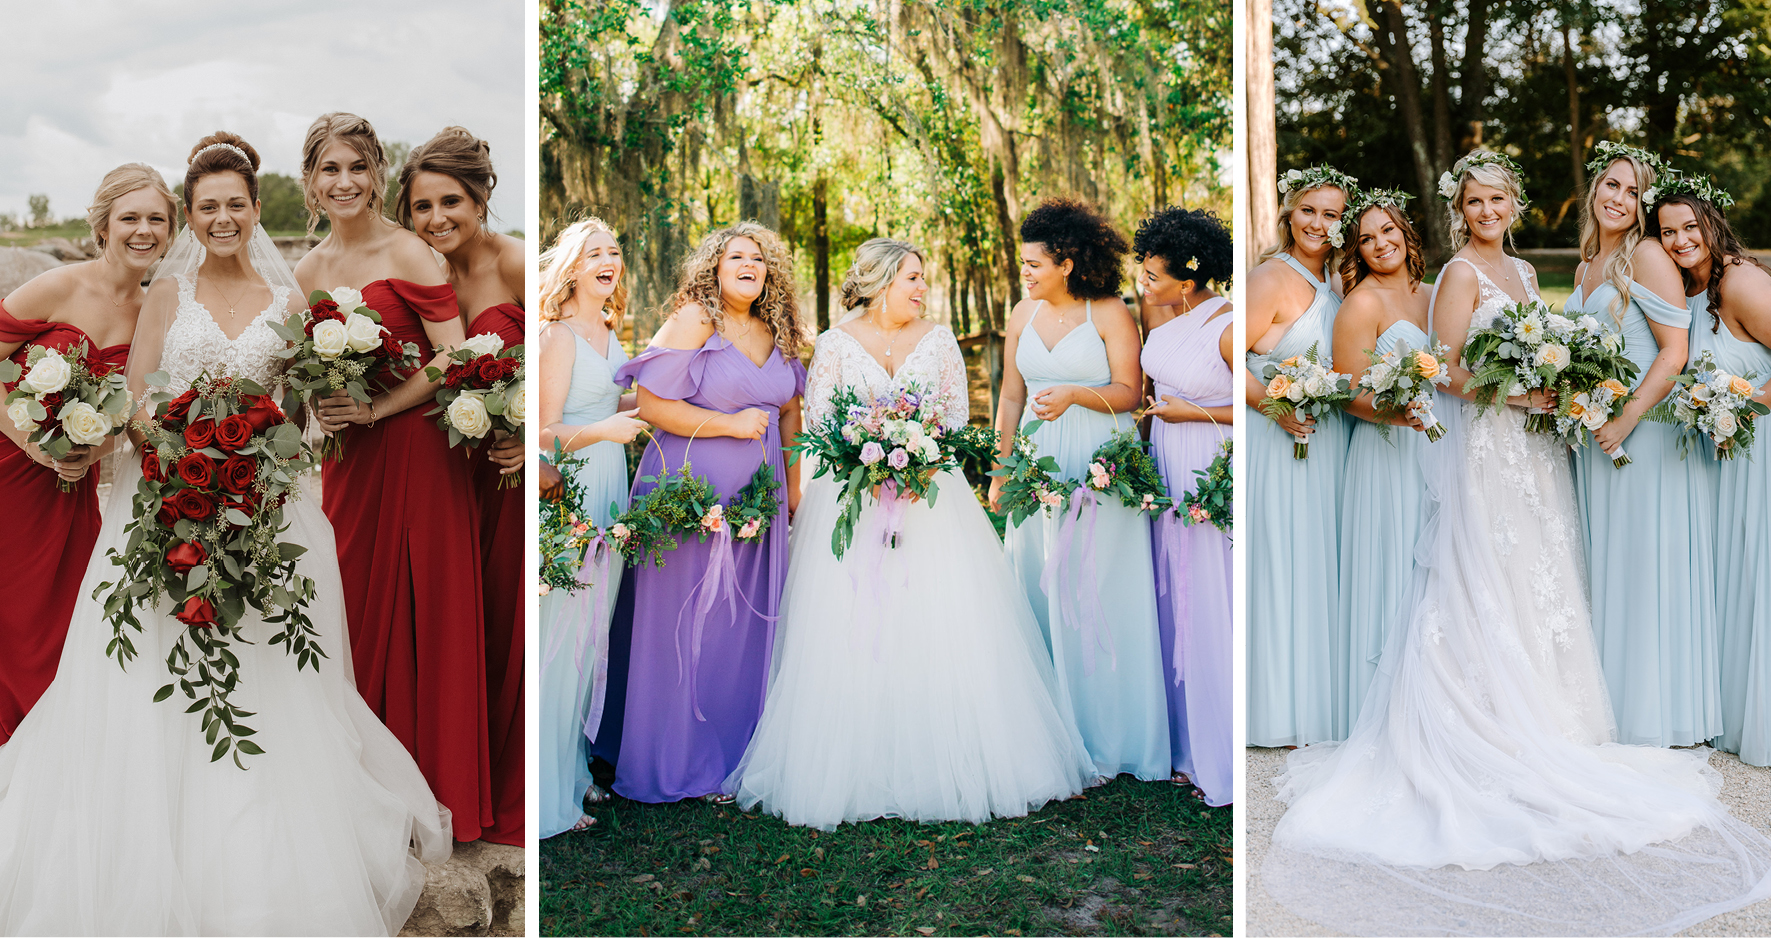 Collage of Real Brides Wearing Maggie Sottero Wedding Dresses and Standing With Their Bridesmaids